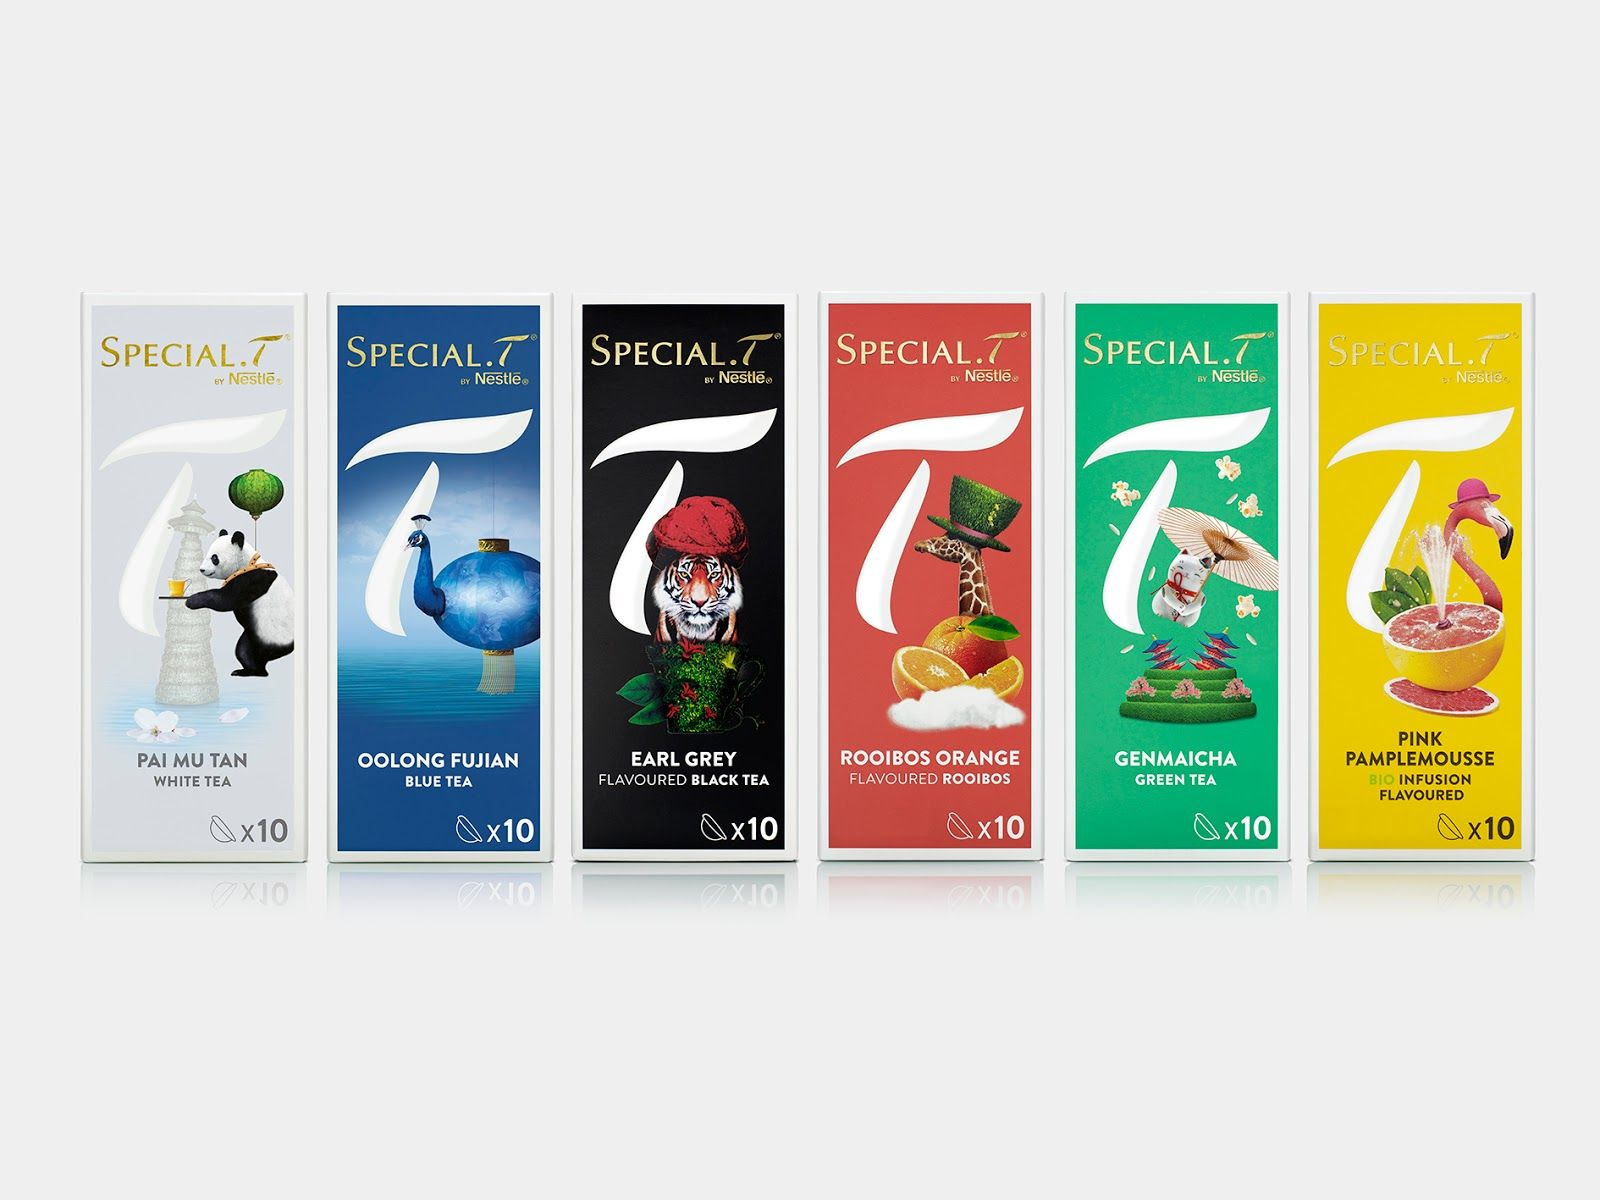 Special T Tea Packaging Design Packaging Design Tea Packaging